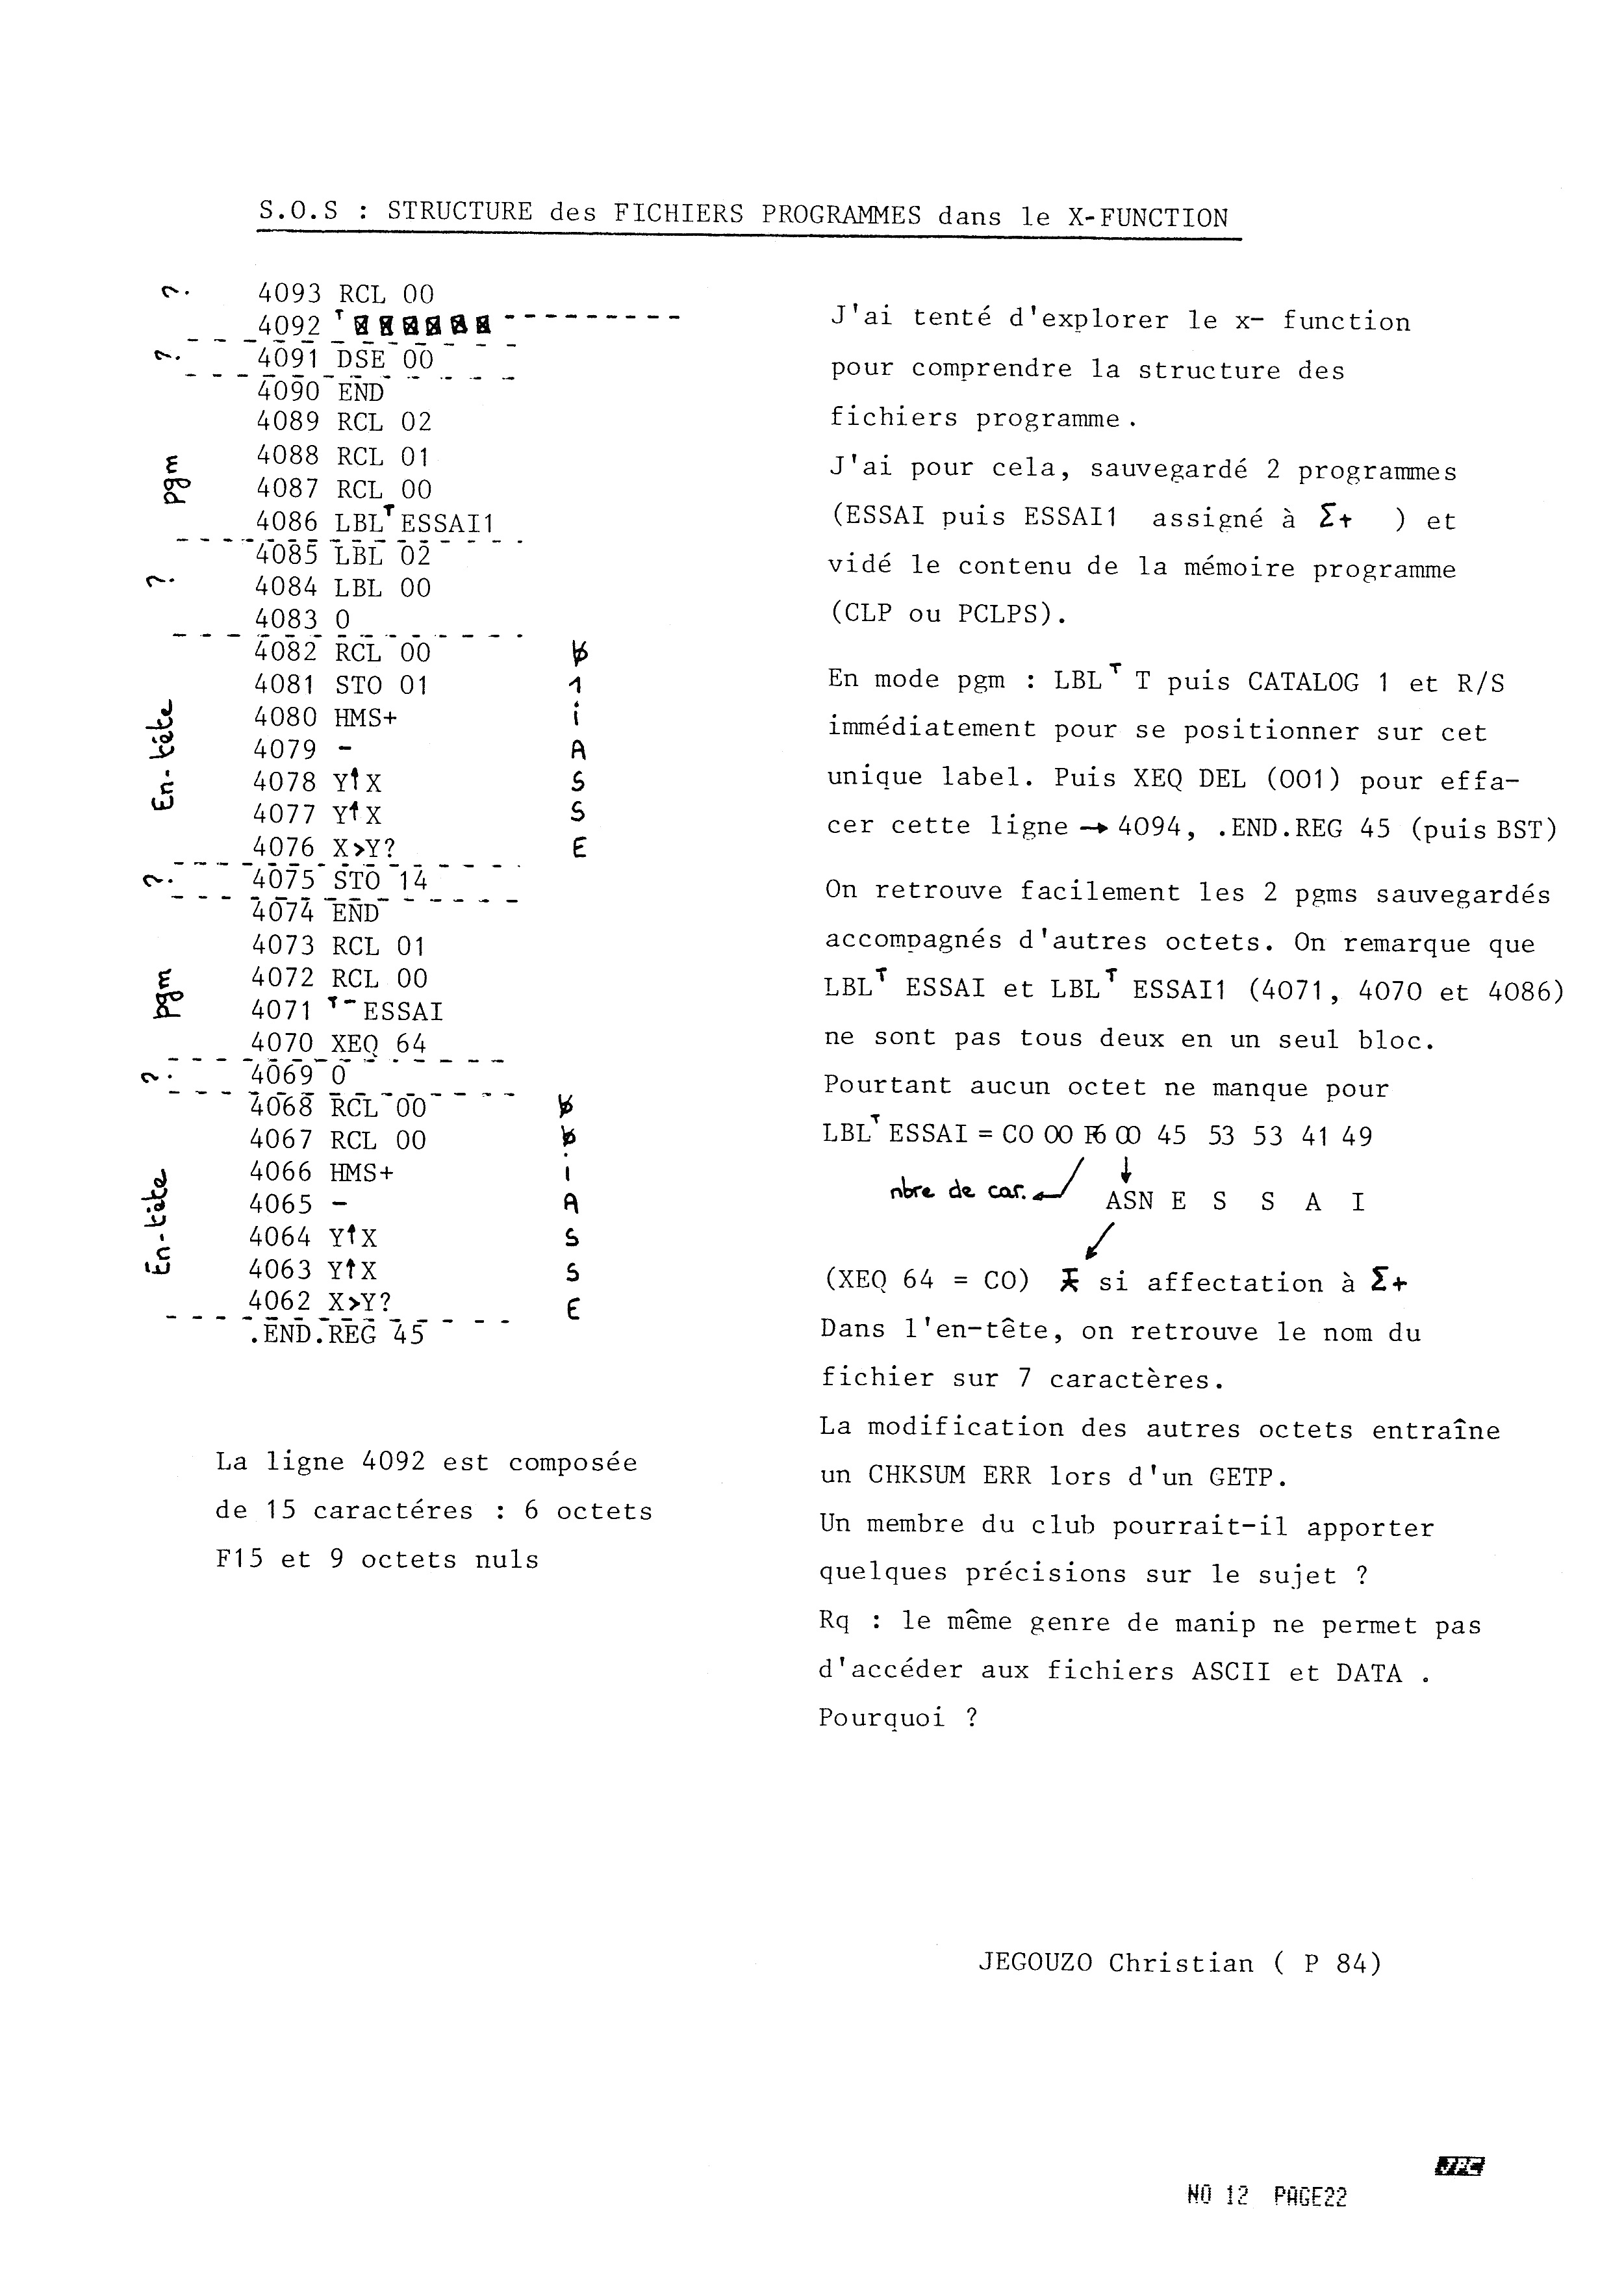 Jp-12-page-22-1000